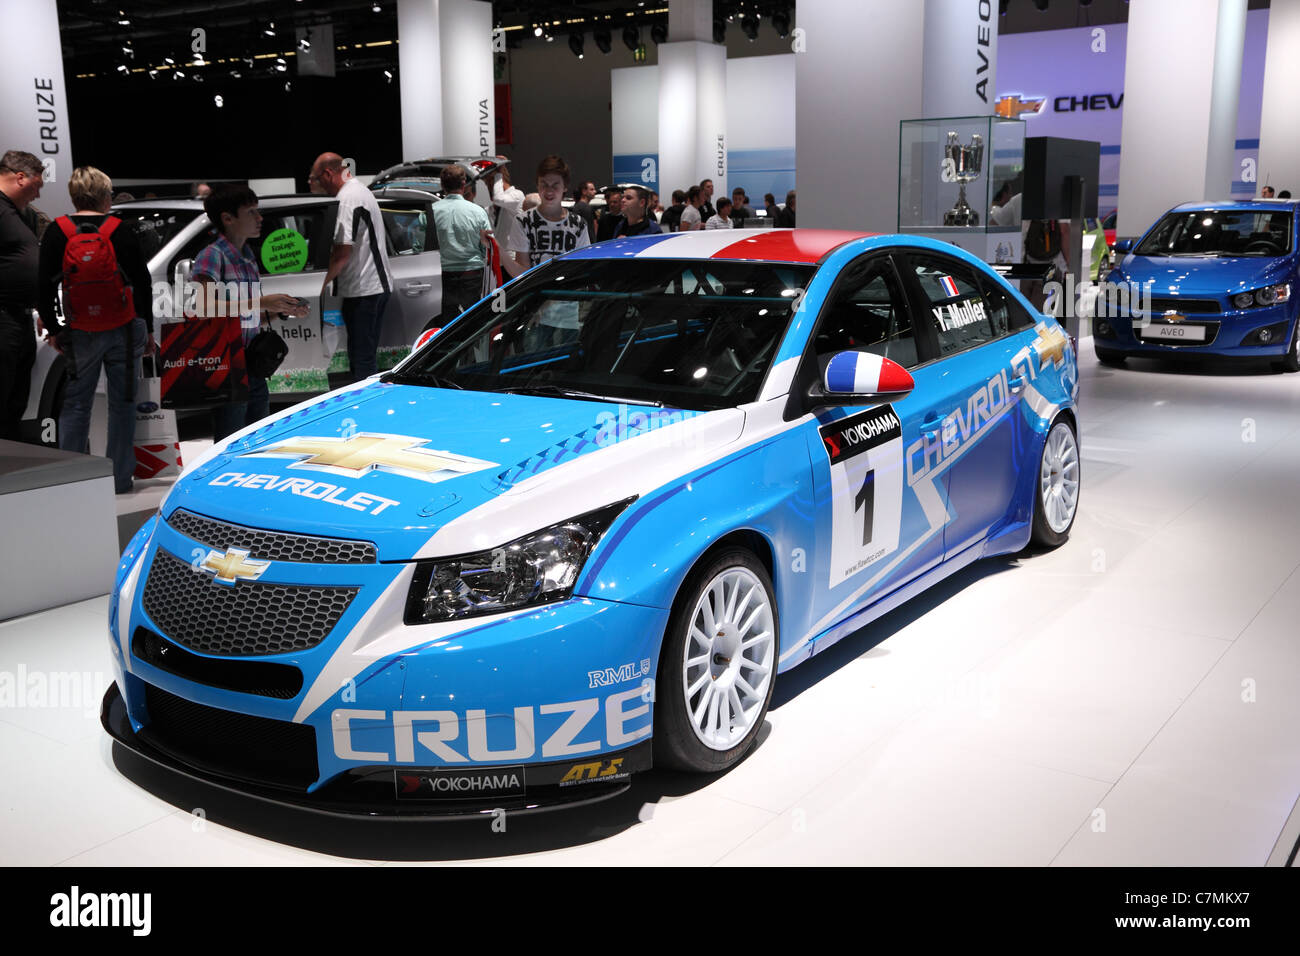 Chevrolet Cruze Racing Car at the 64th IAA (Internationale Automobil ...